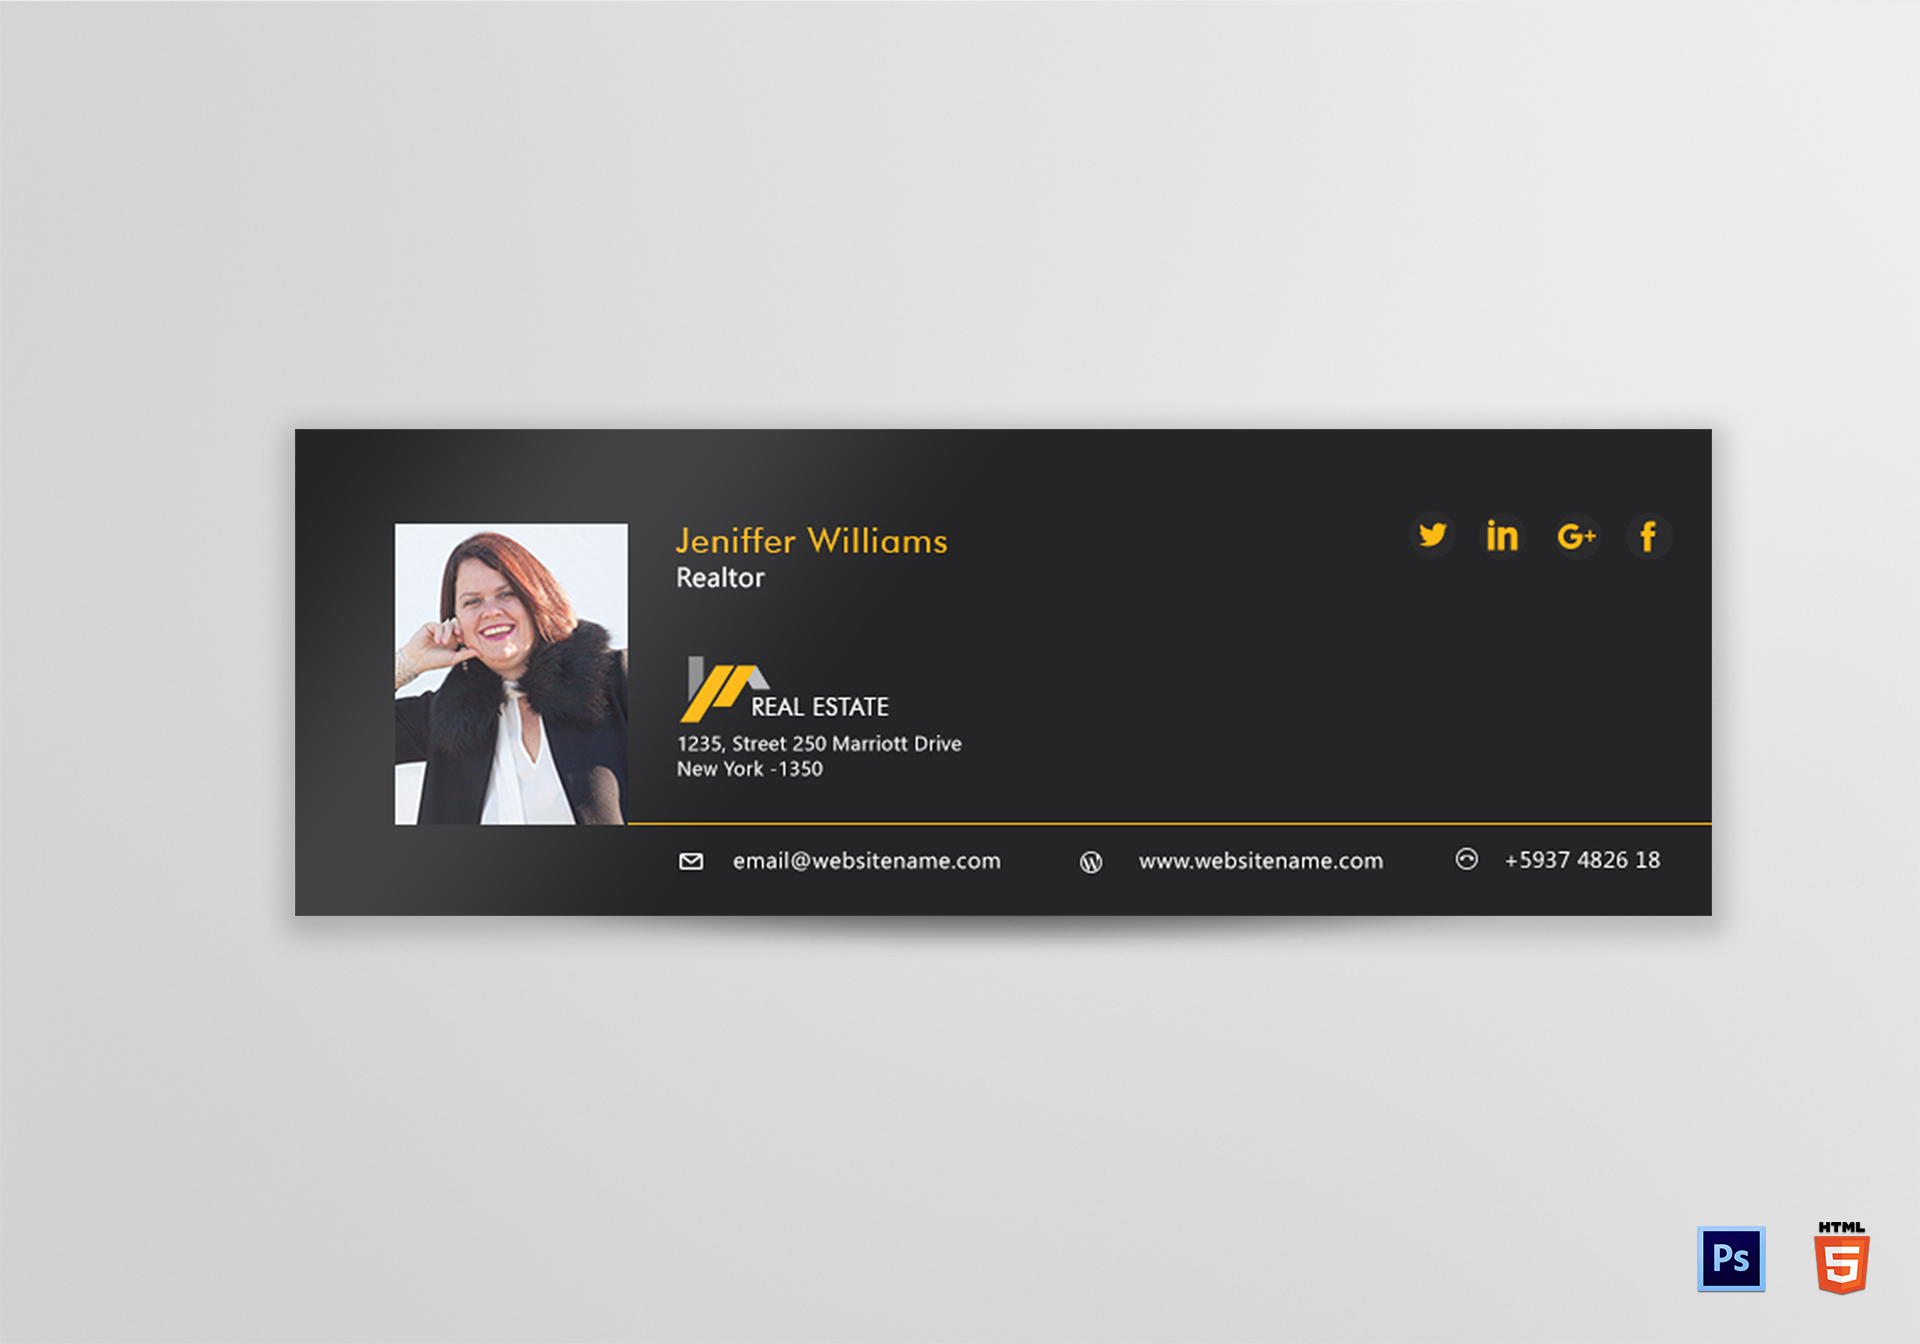 Realtor Email Signature Design Template in PSD, HTML